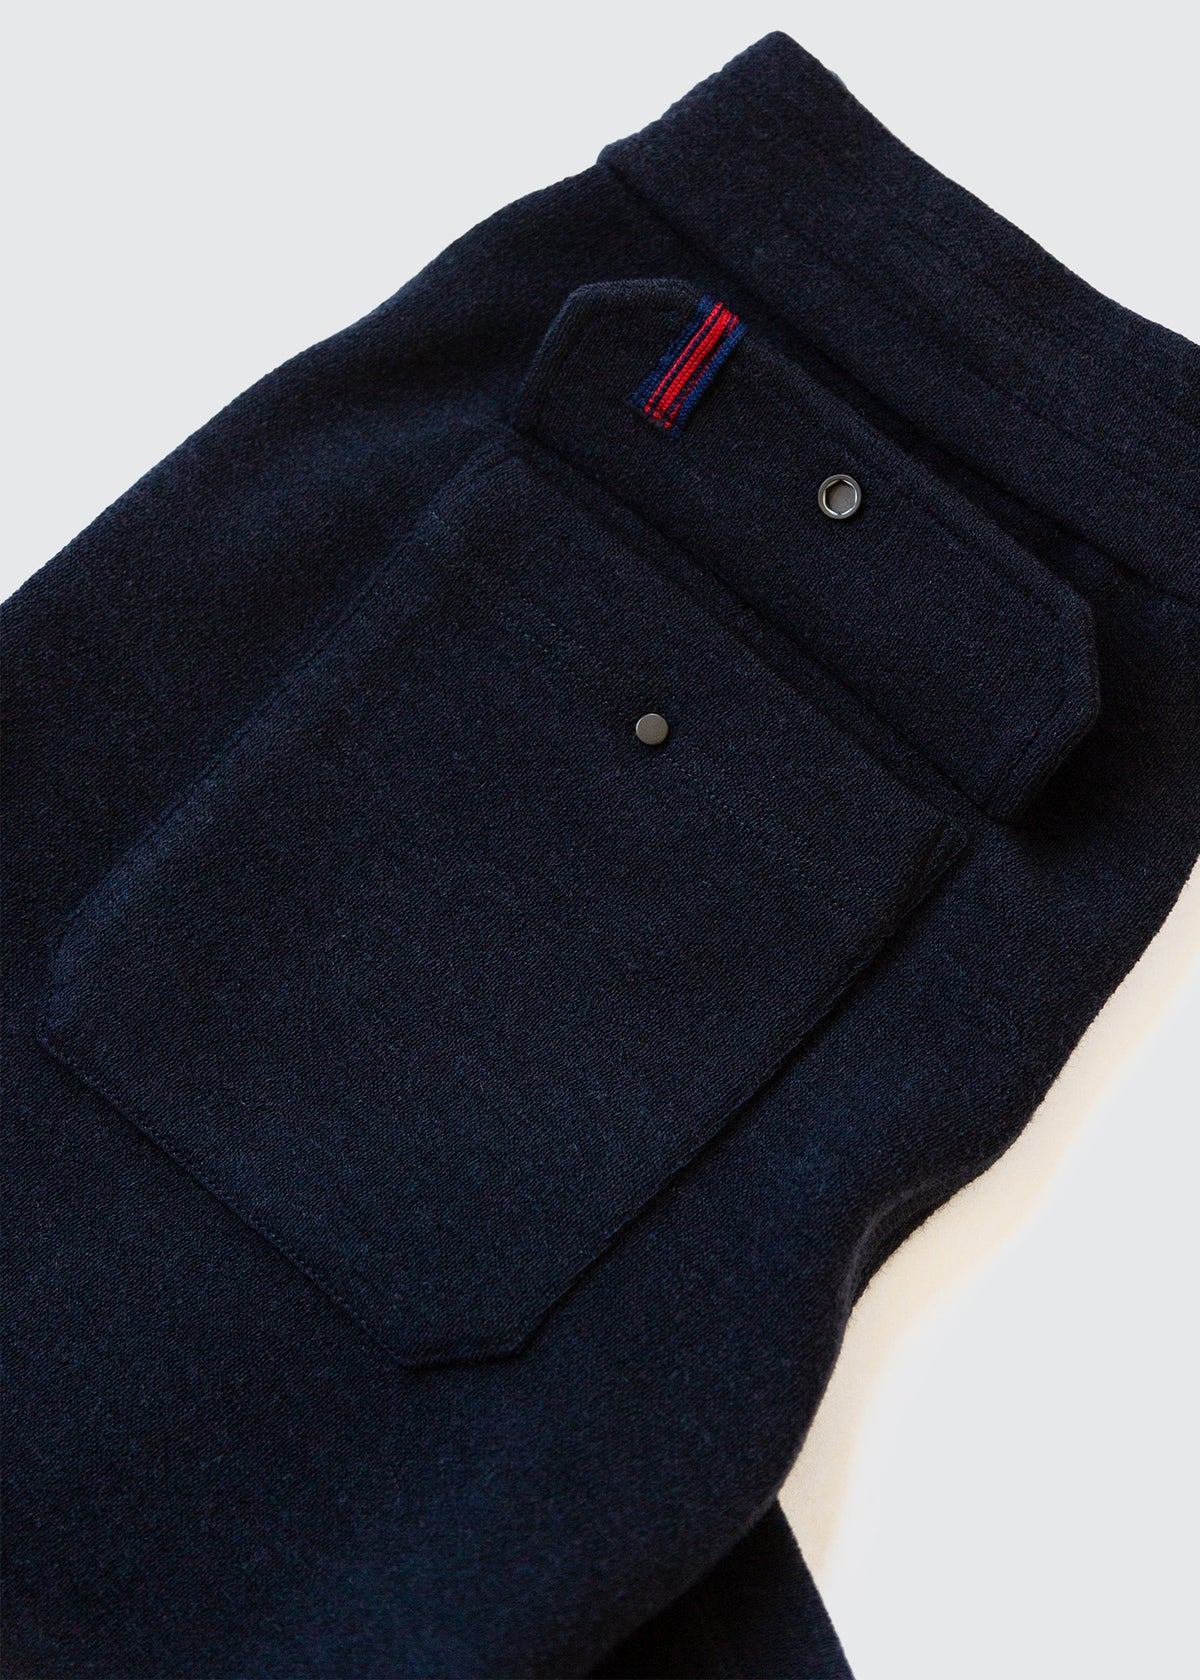 203 - NYLON TROUSER - NAVY - Wilson & Willy's - MPLS Neighbor Goods